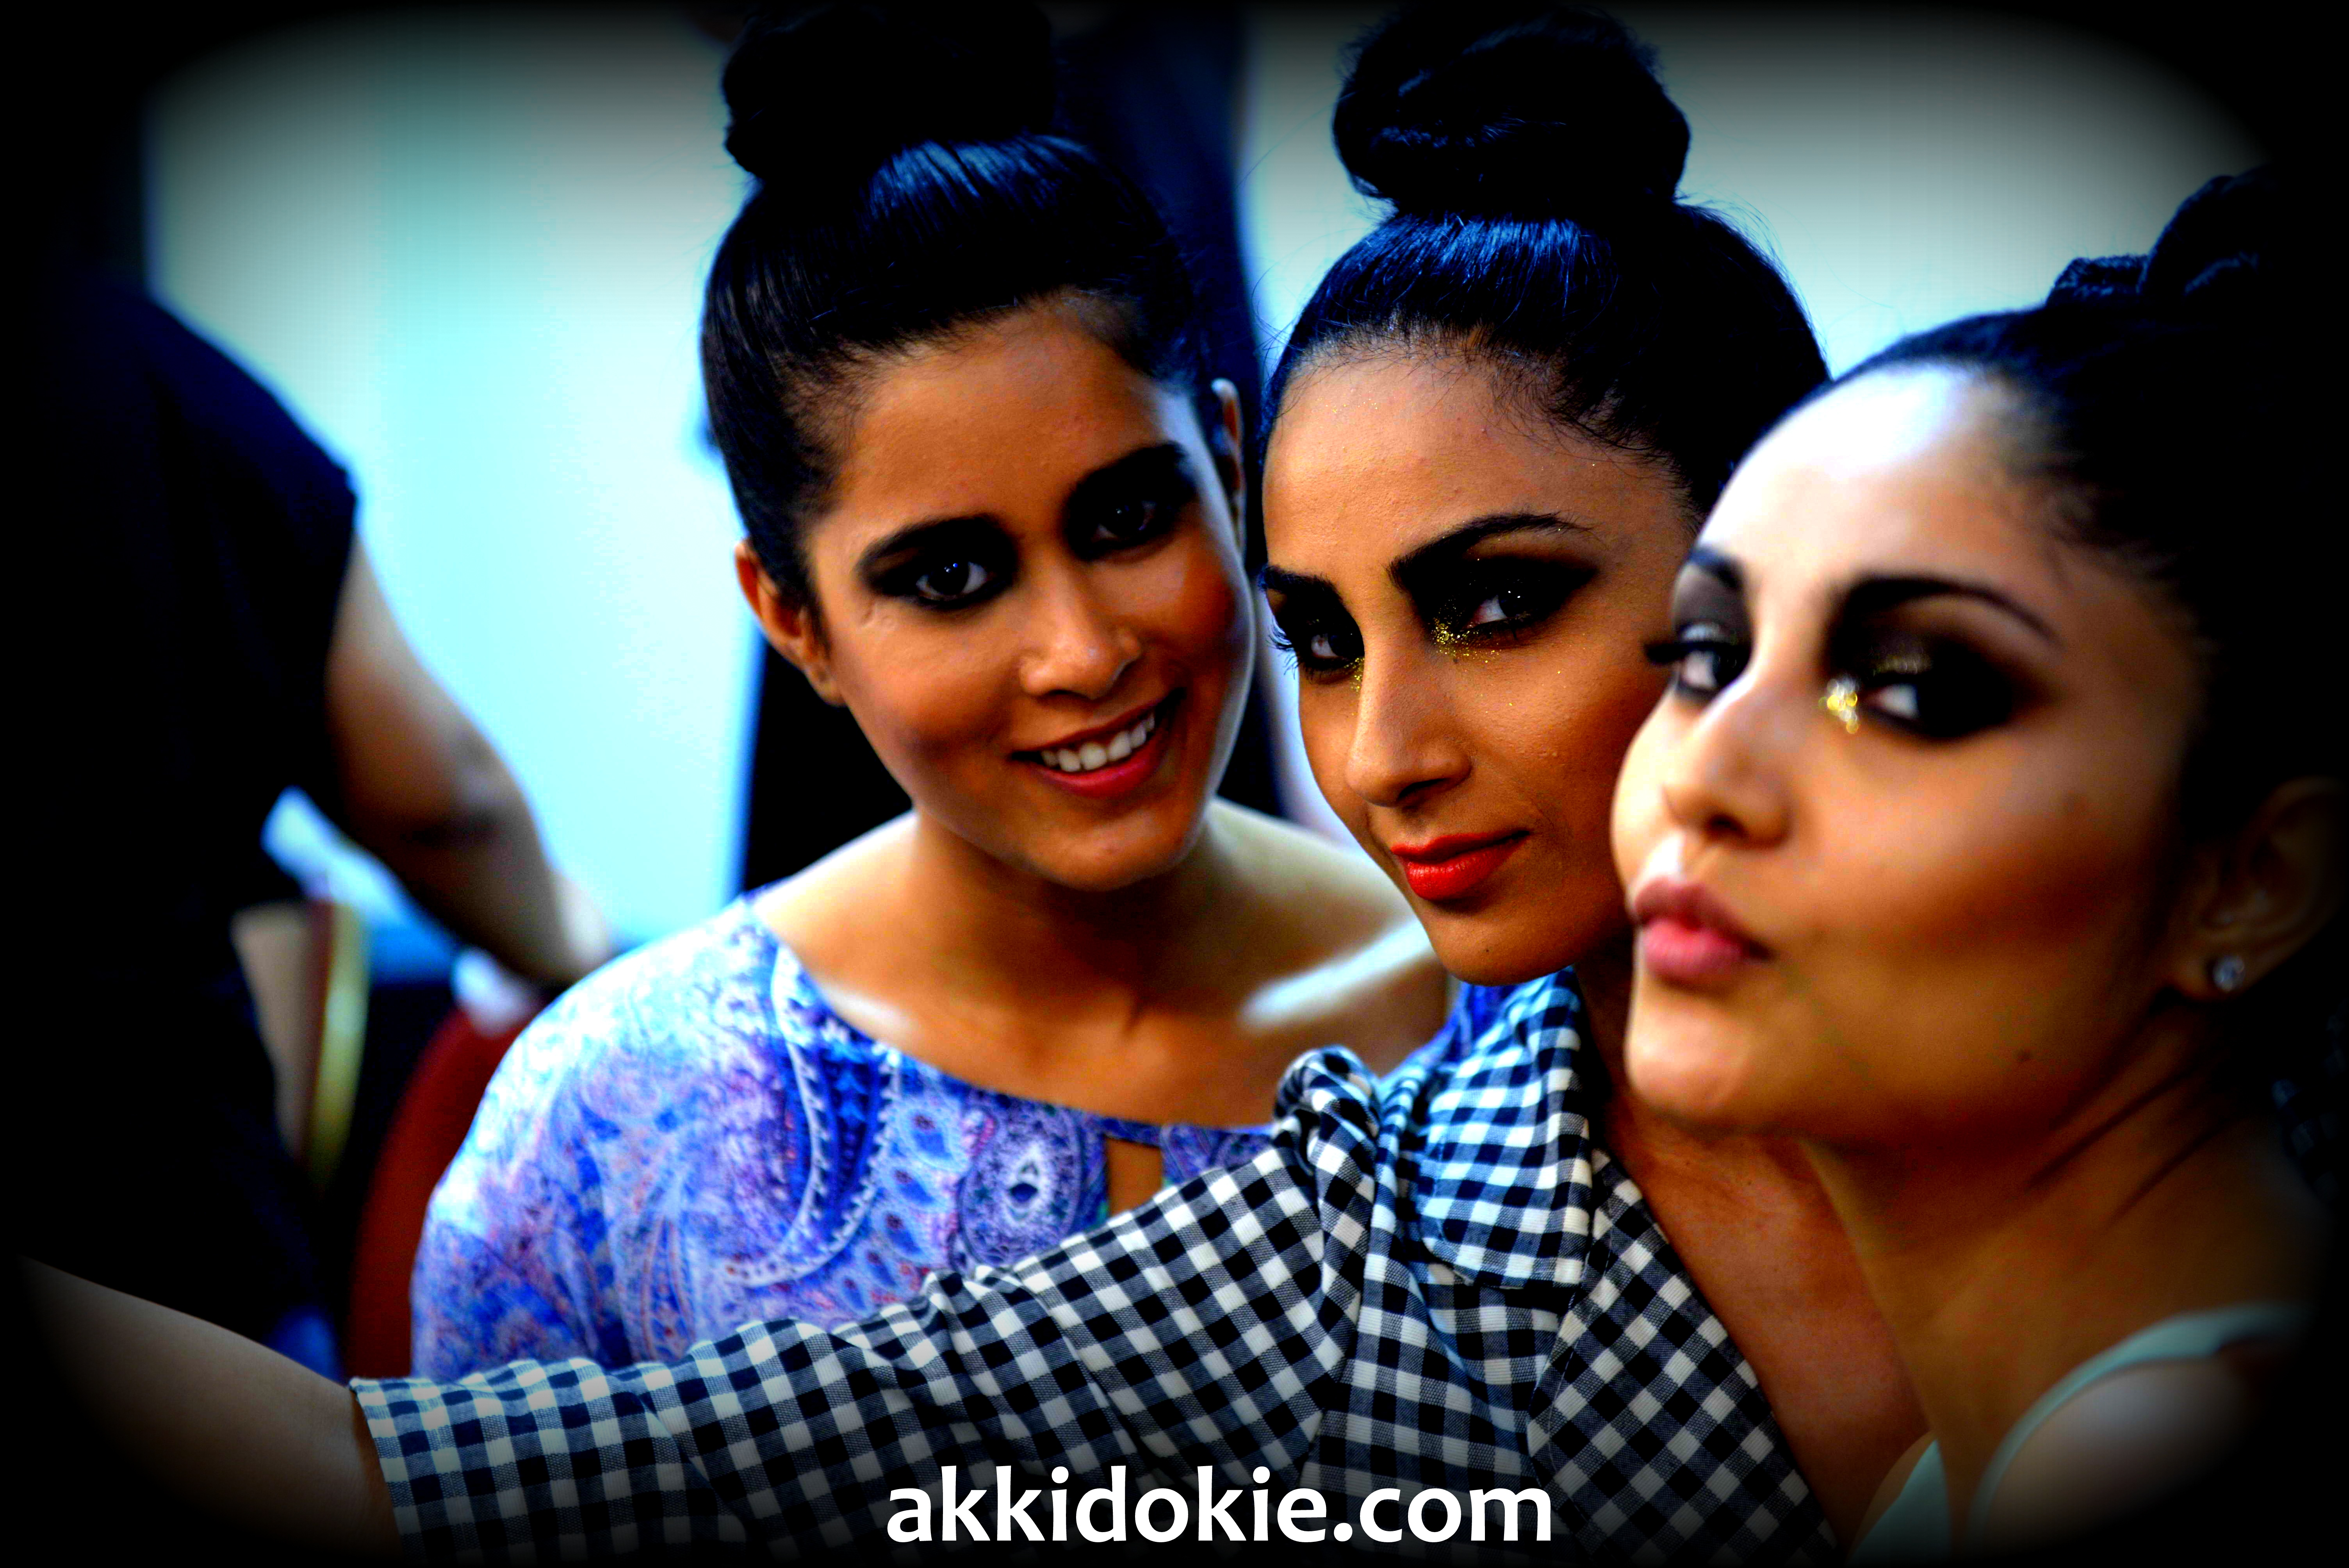 Exclusive backstage pics from Myntra Fashion Weekend 2014